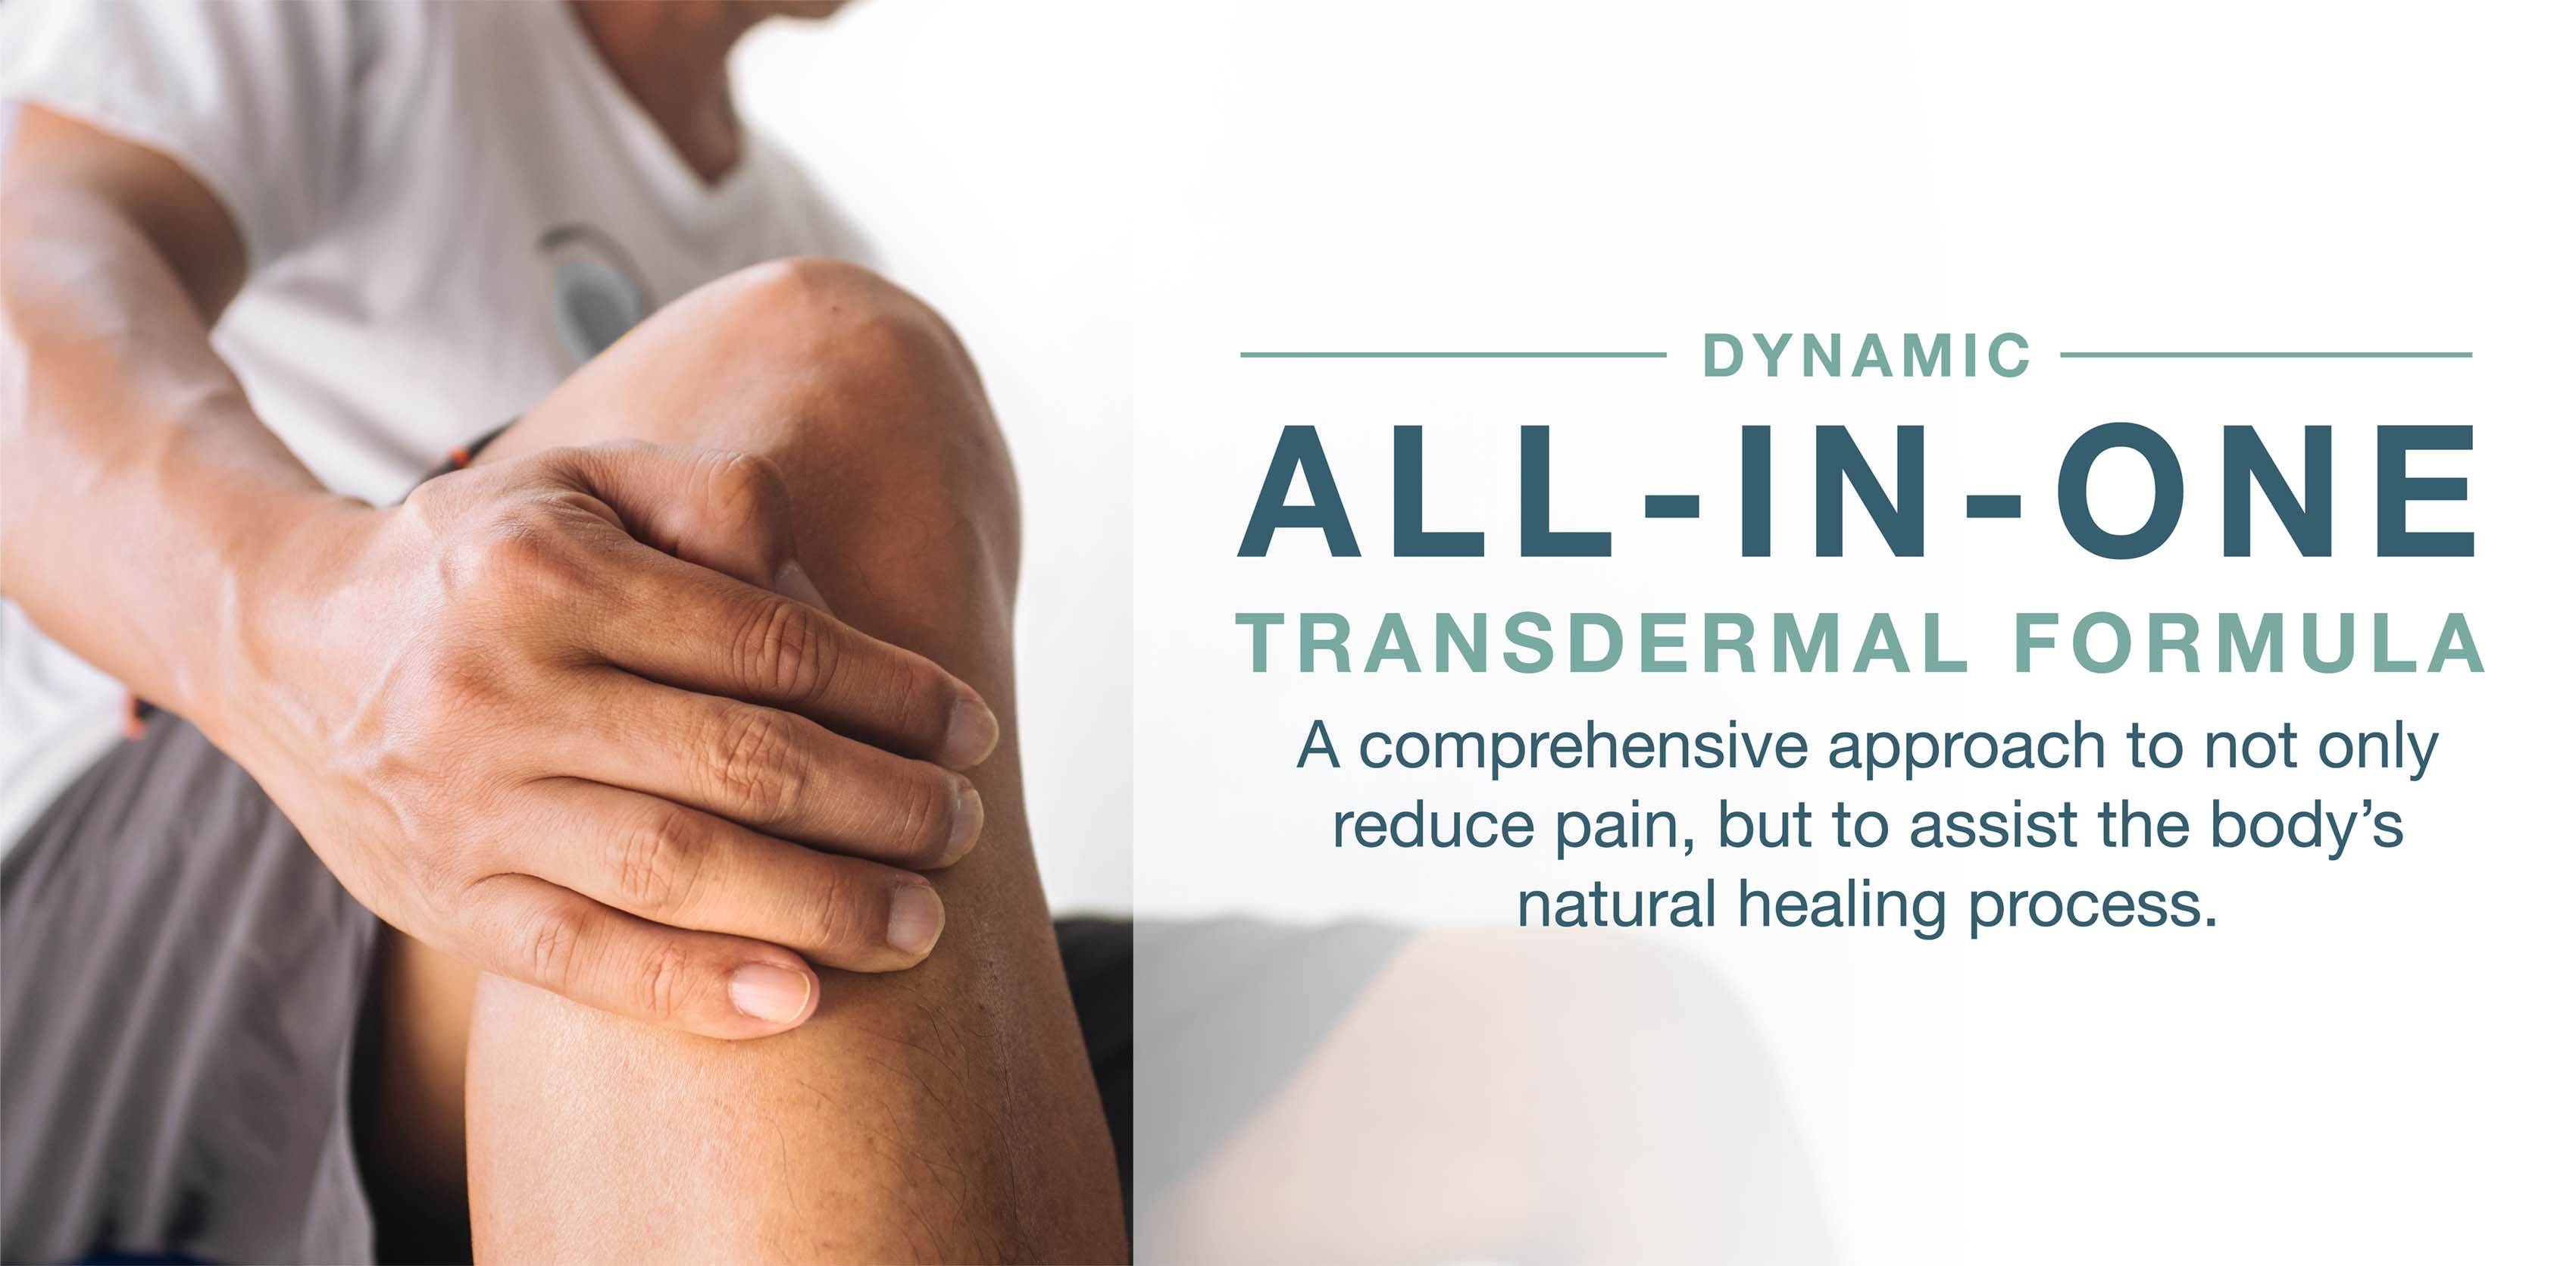 Dynamic all-in-one transdermal formula is a comprehensive approach to reduce pain and assist the body's natural healing.